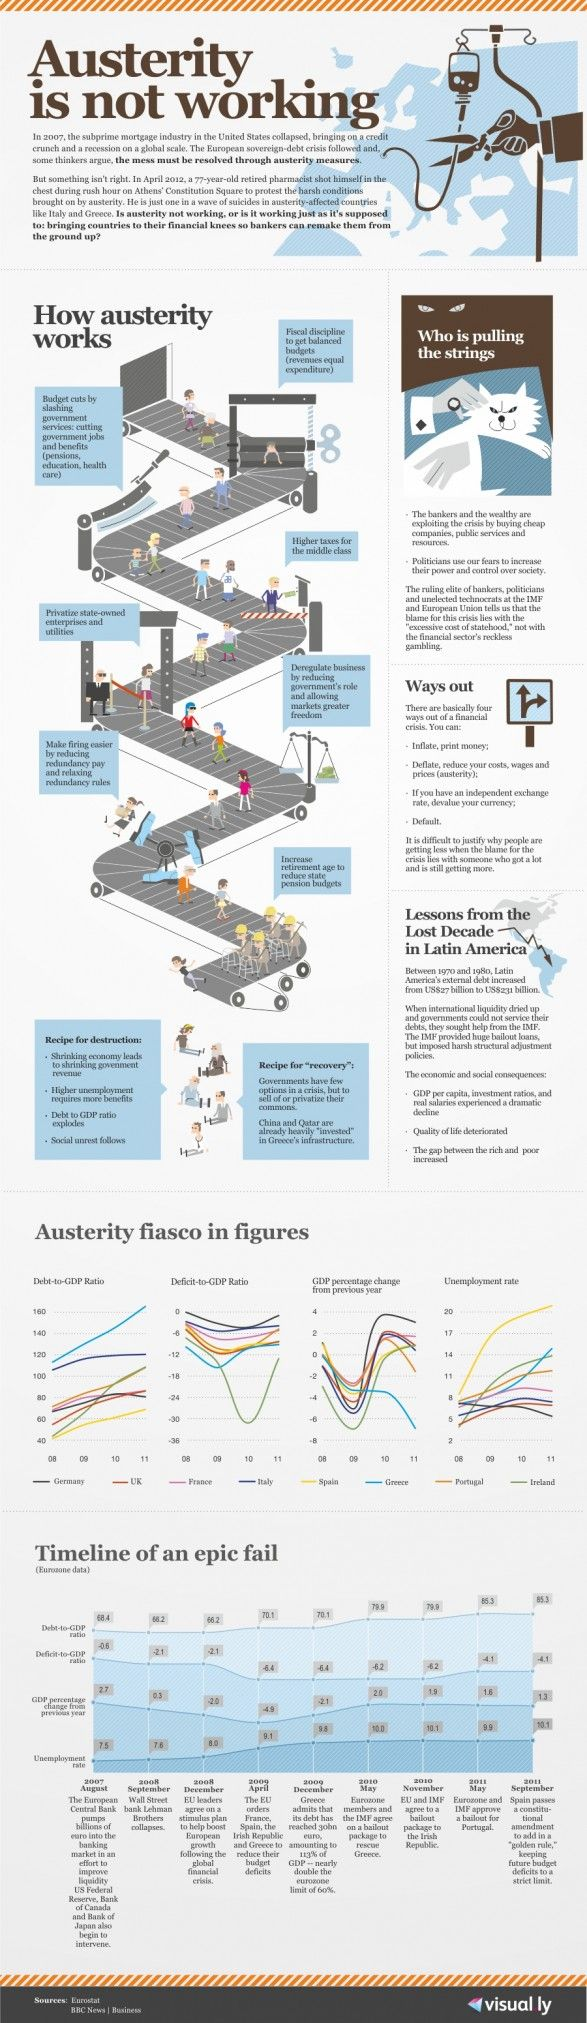 Infographic: Austerity – An Epic Failure? | Economy Watch